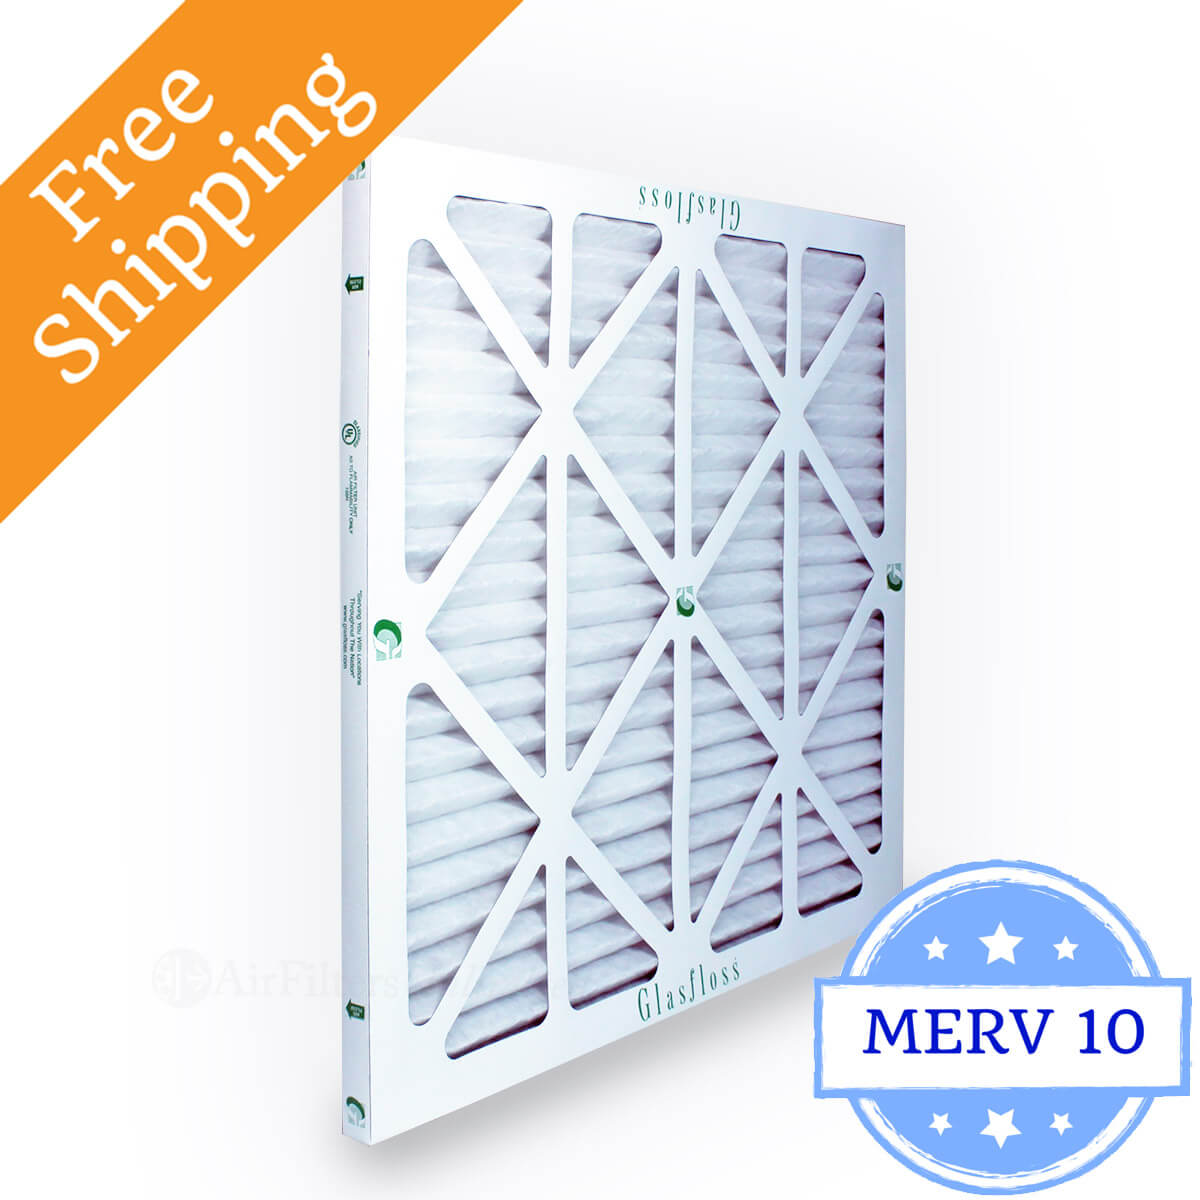 Glasfloss 25x25x1 Air Filter ZL Series